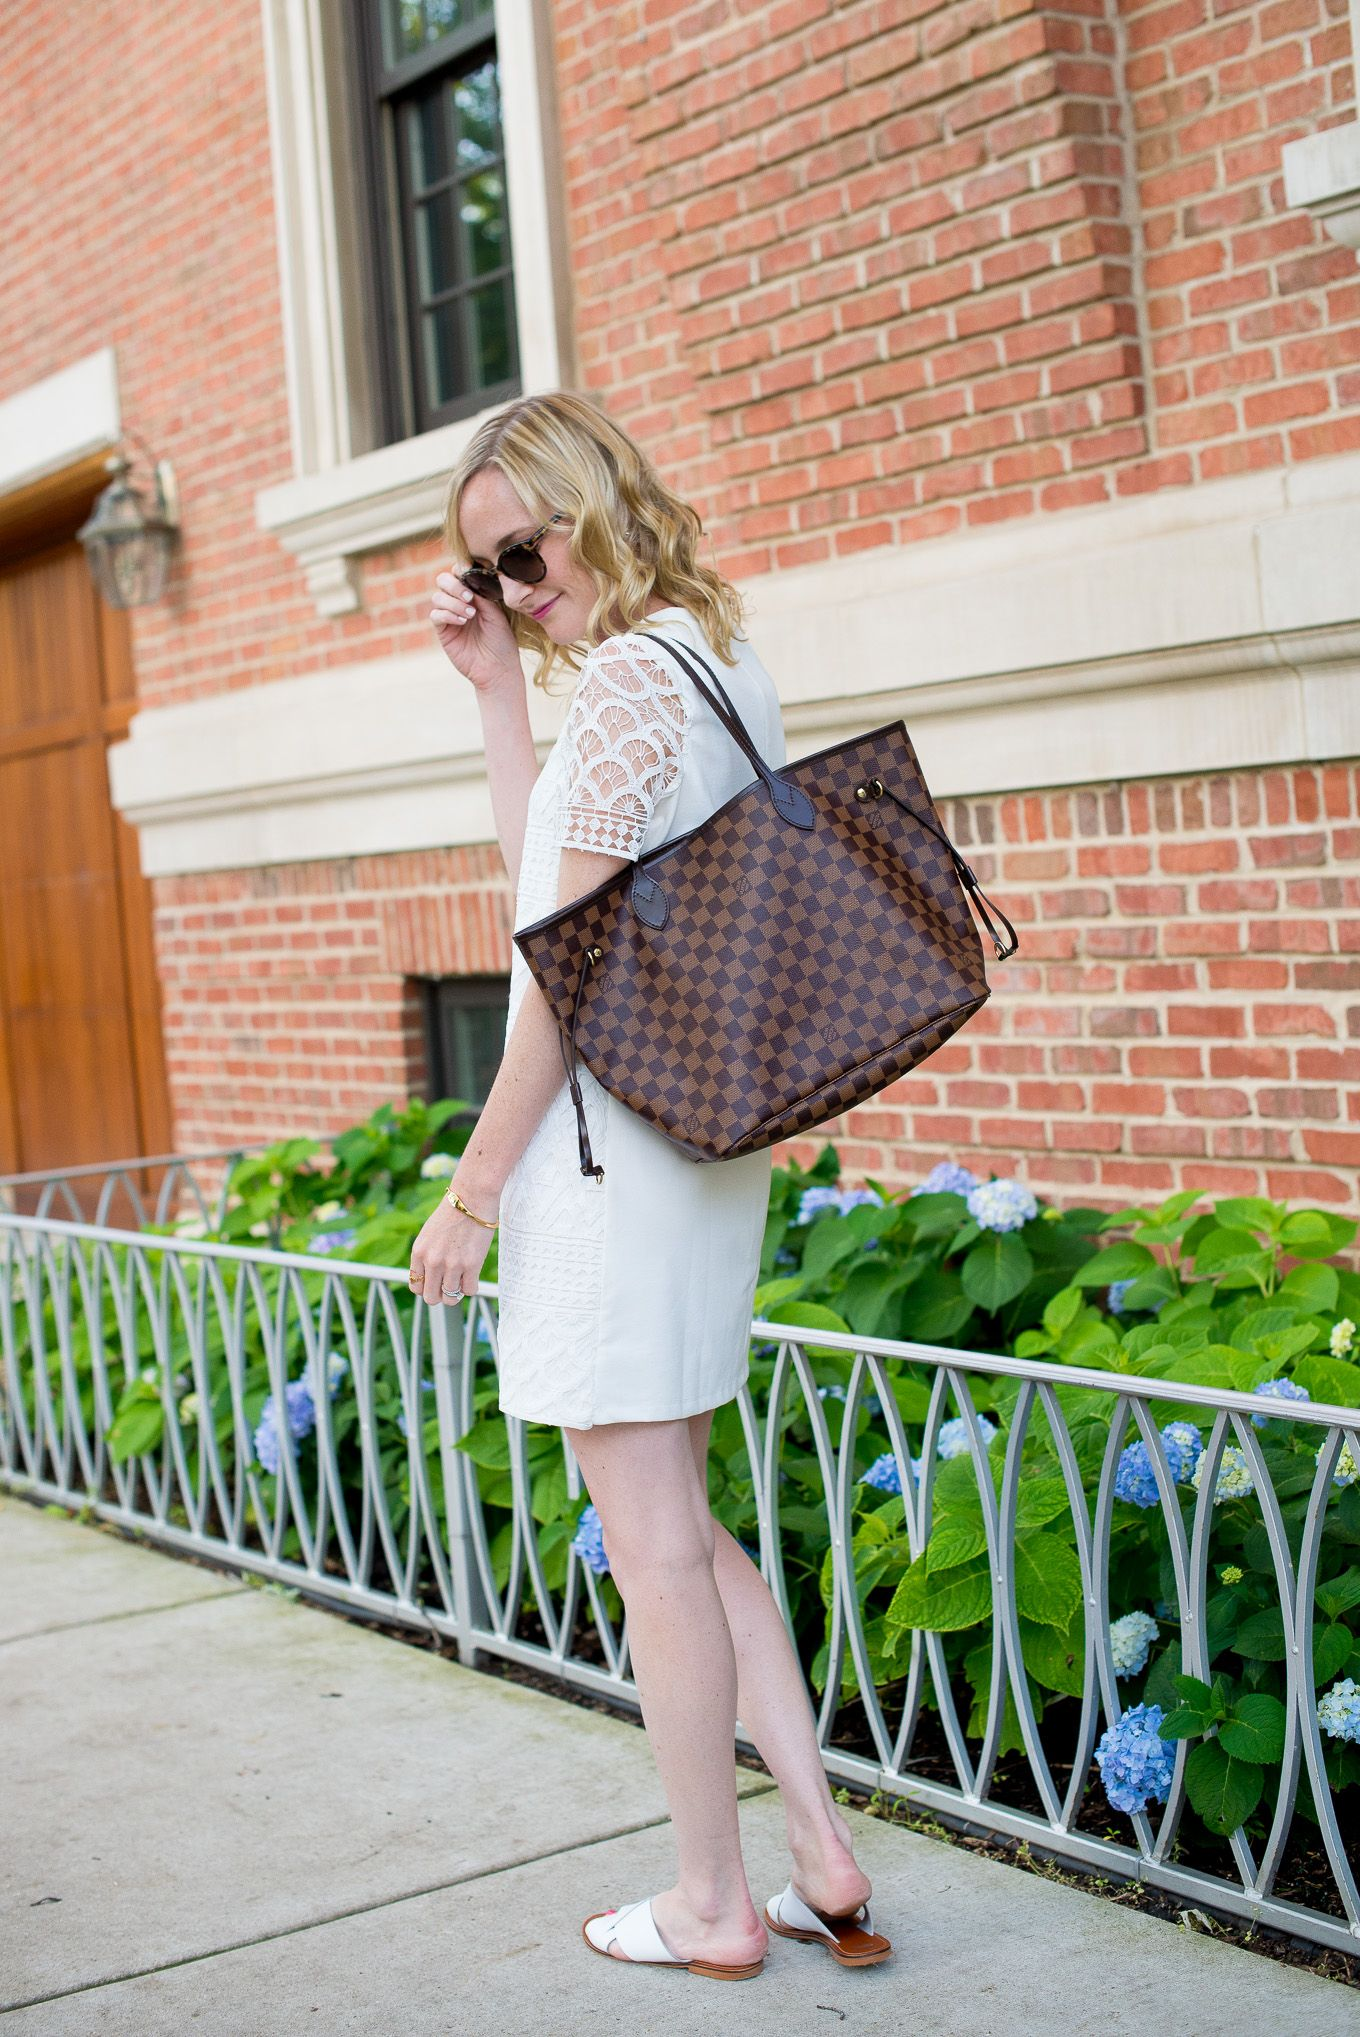 bbaf85826e Backyard Bbq Wear With Asos By Kelly In The City Louis Vuitton Neverfull  Tote